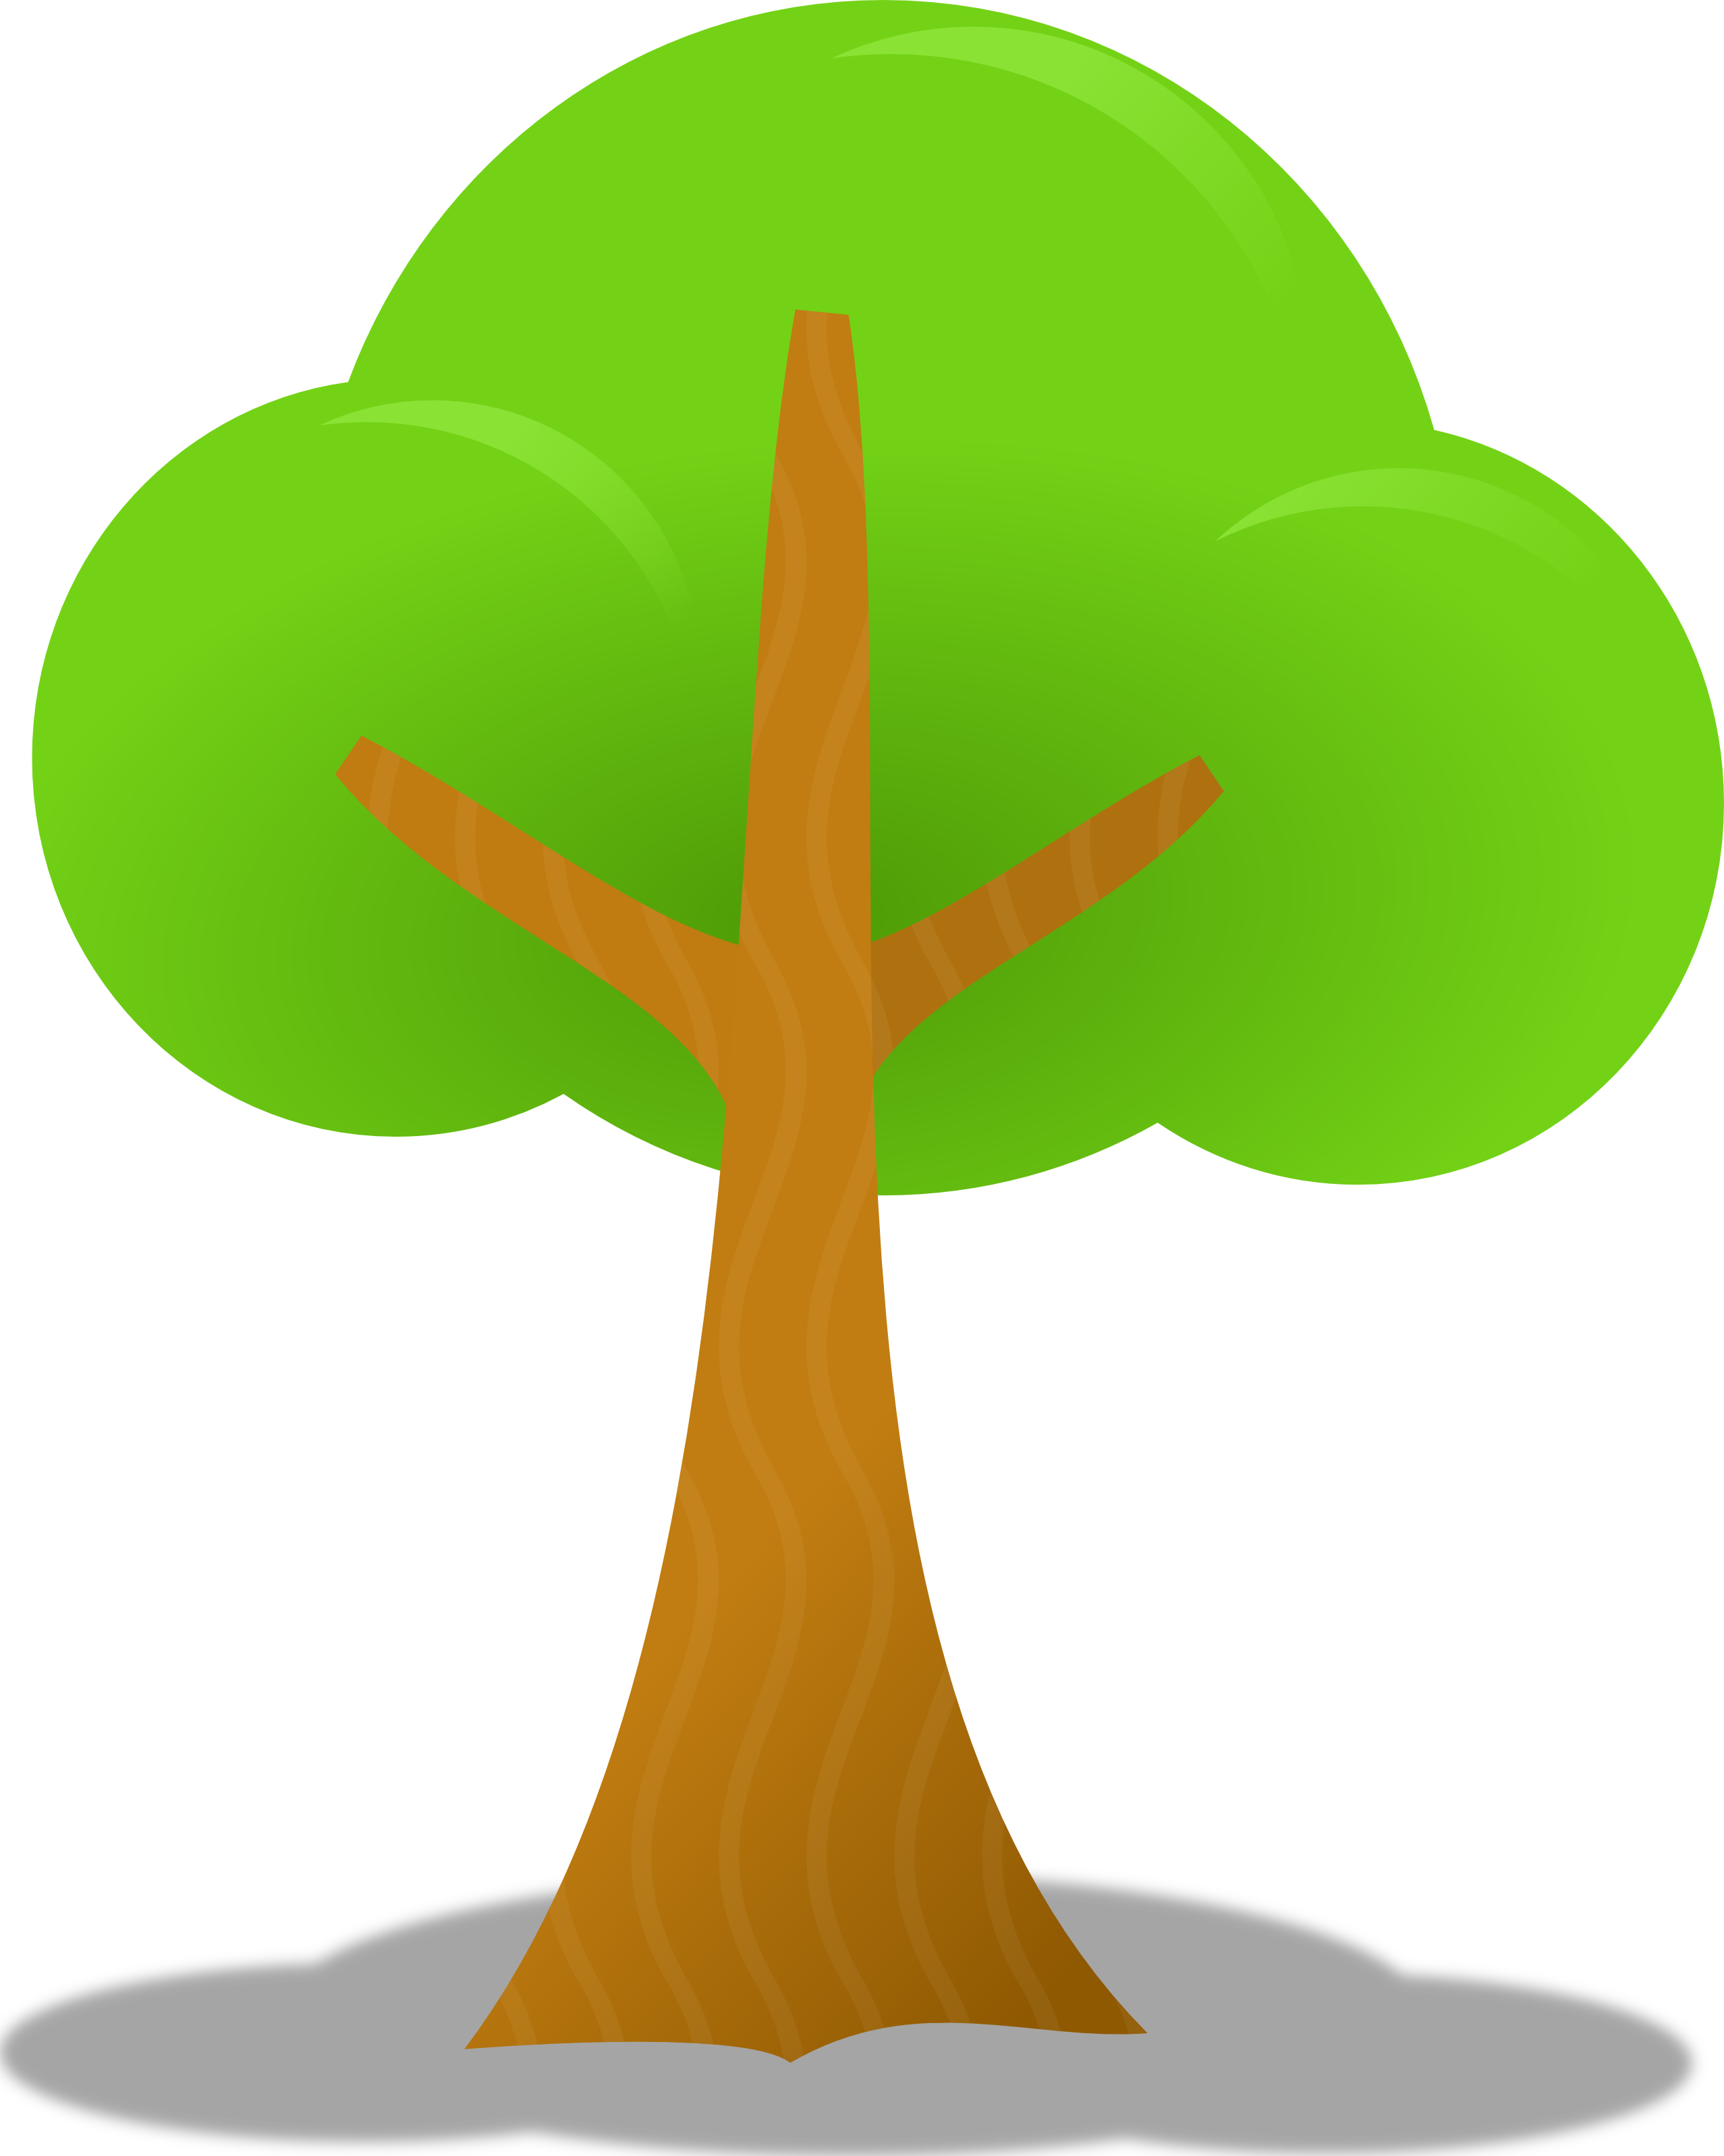 Plant tree clipart jpg download Tree Clipart Clipart kind plant - Free Clipart on Dumielauxepices.net jpg download